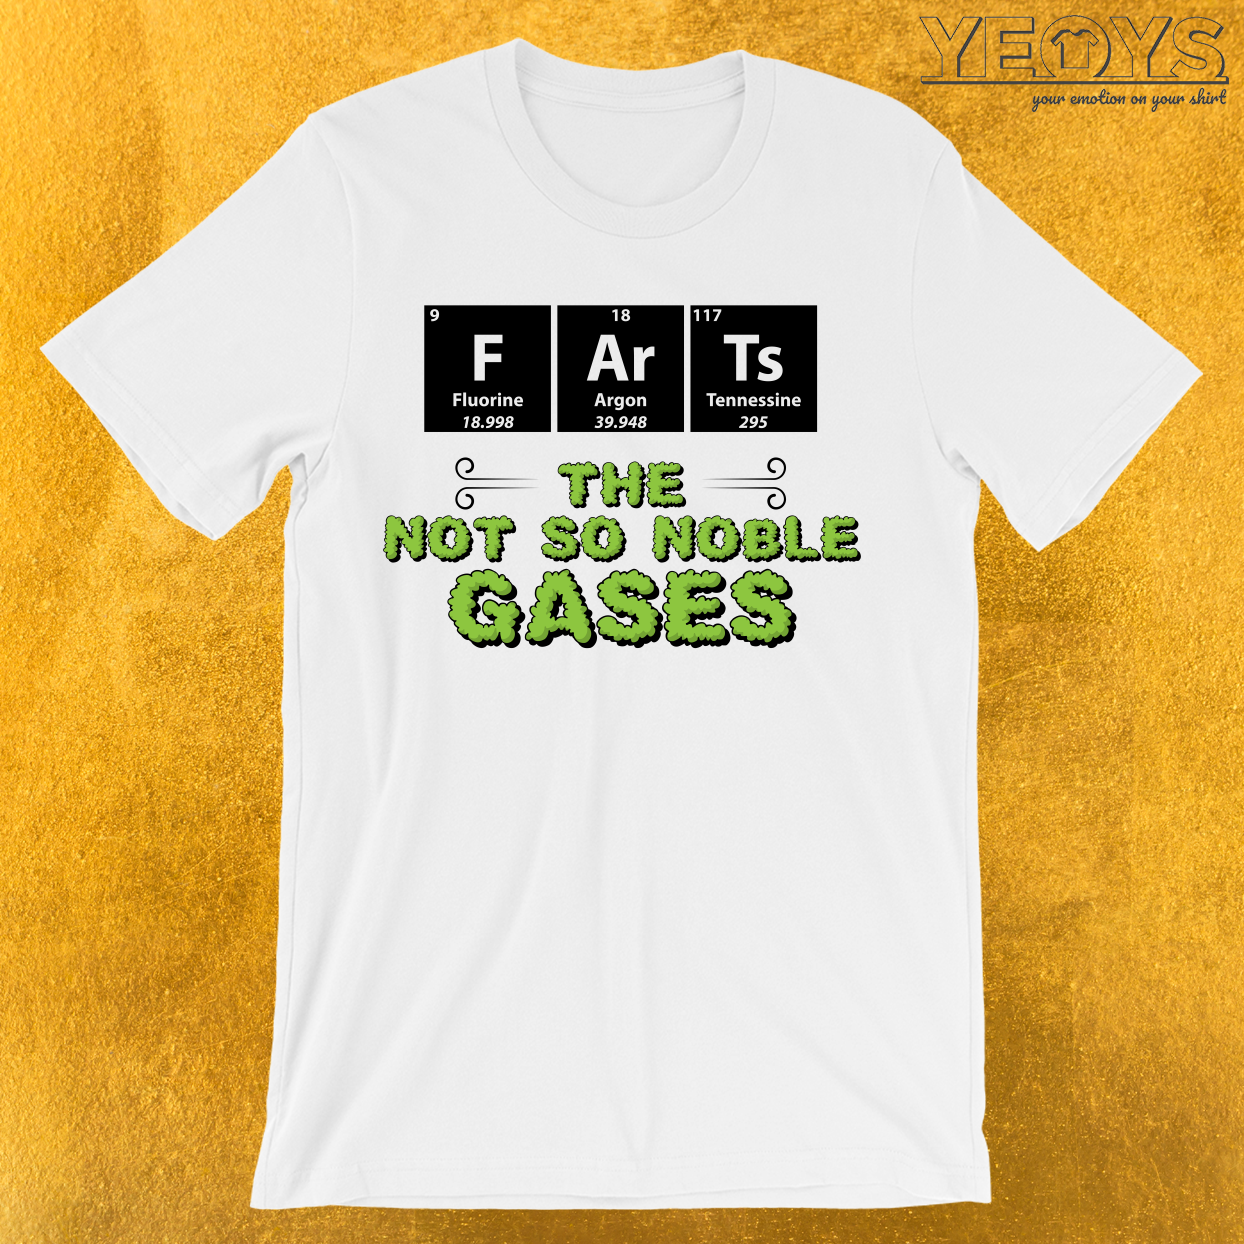 00a2330c Farts The Not So Noble Gases T-Shirt --- Chemist Humor Novelty: This ...